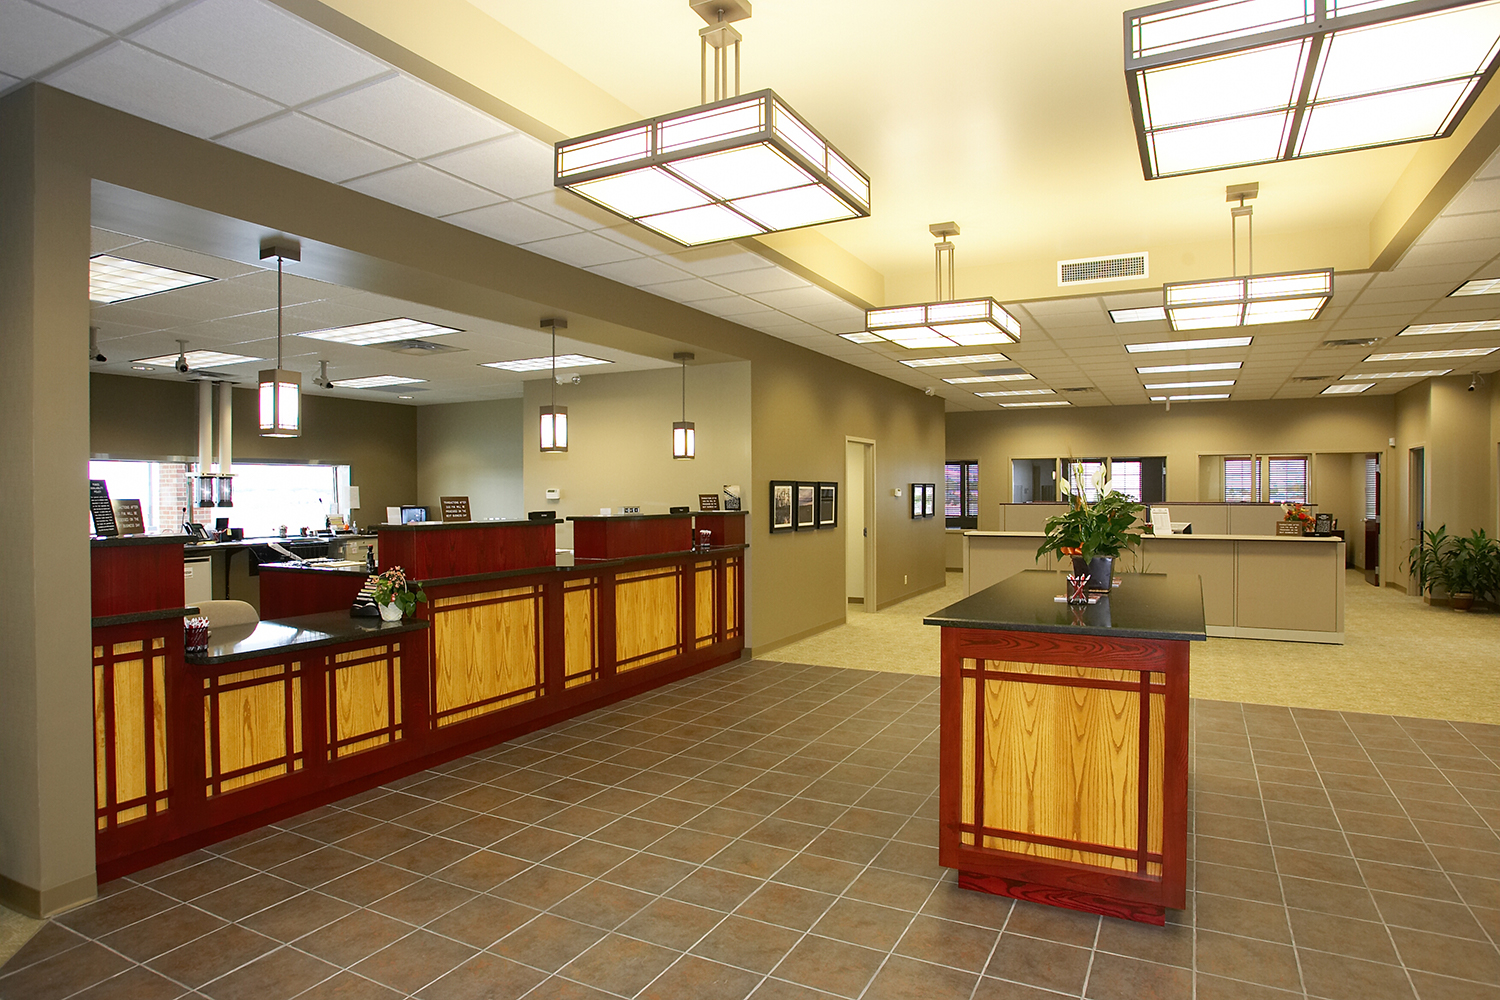 Midland Crafts architectural lighting fixtures illuminate a sophisticated bank lobby.